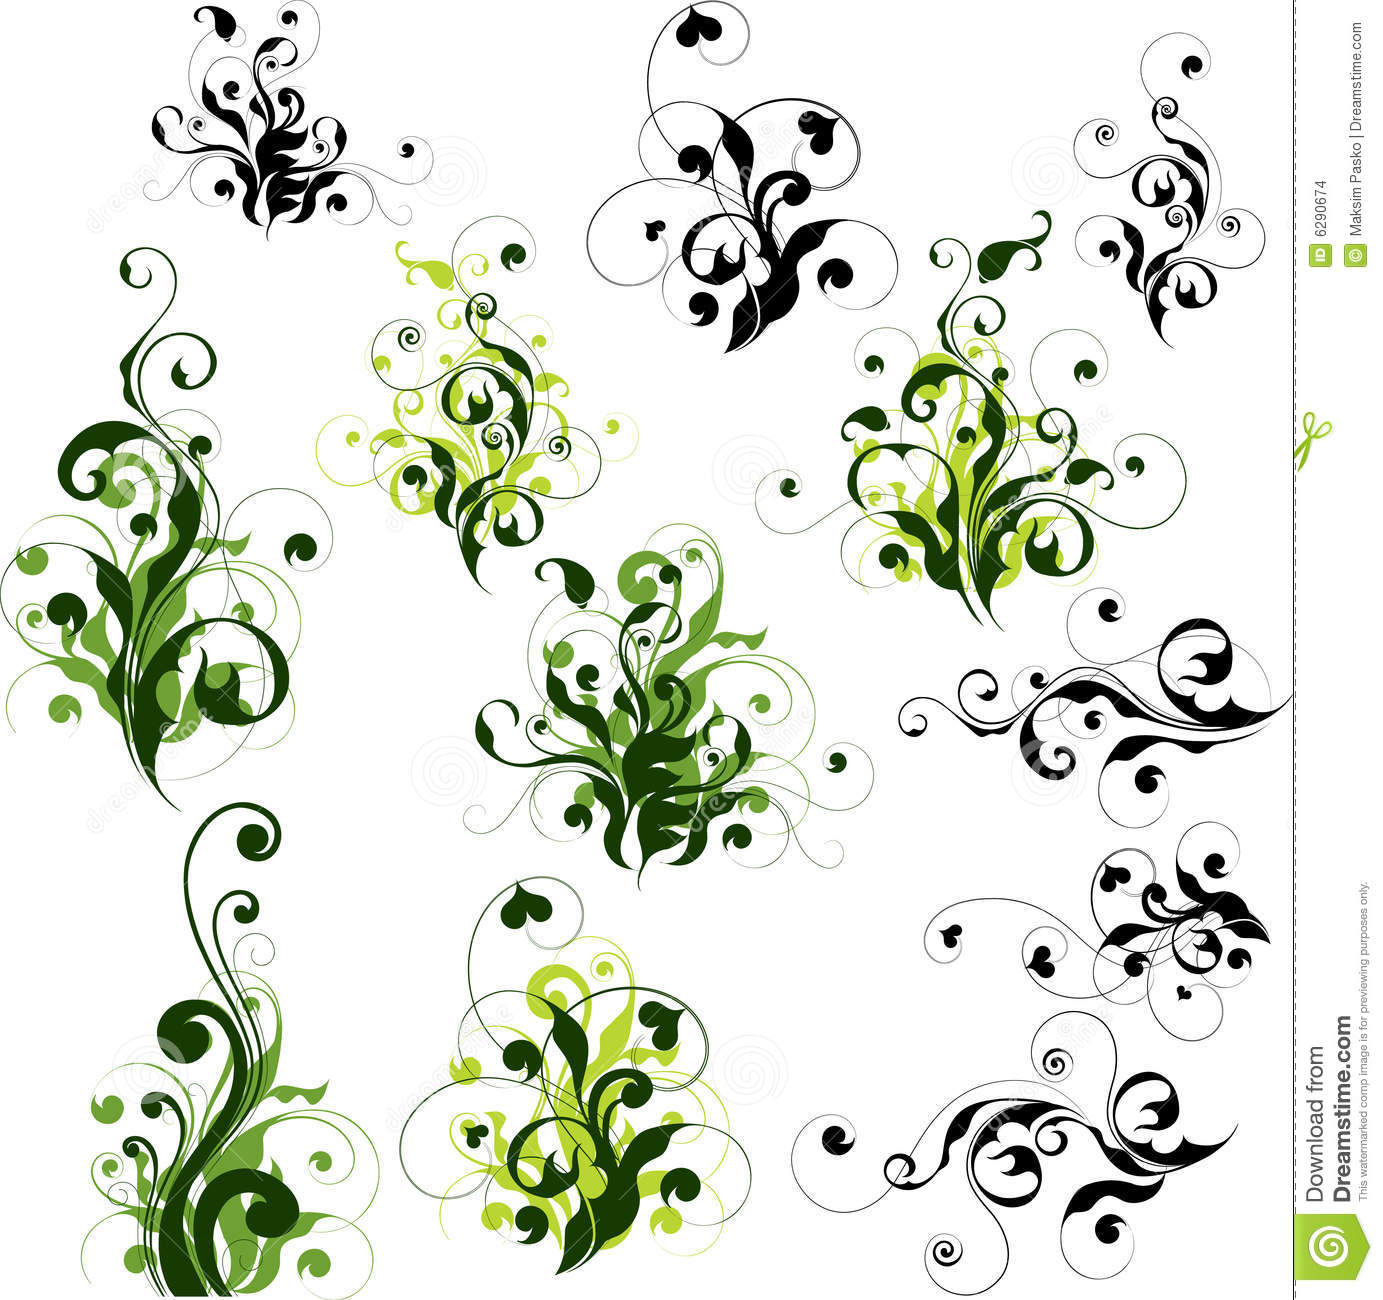 Floral Decorations floral decorations set stock images - image: 6290674